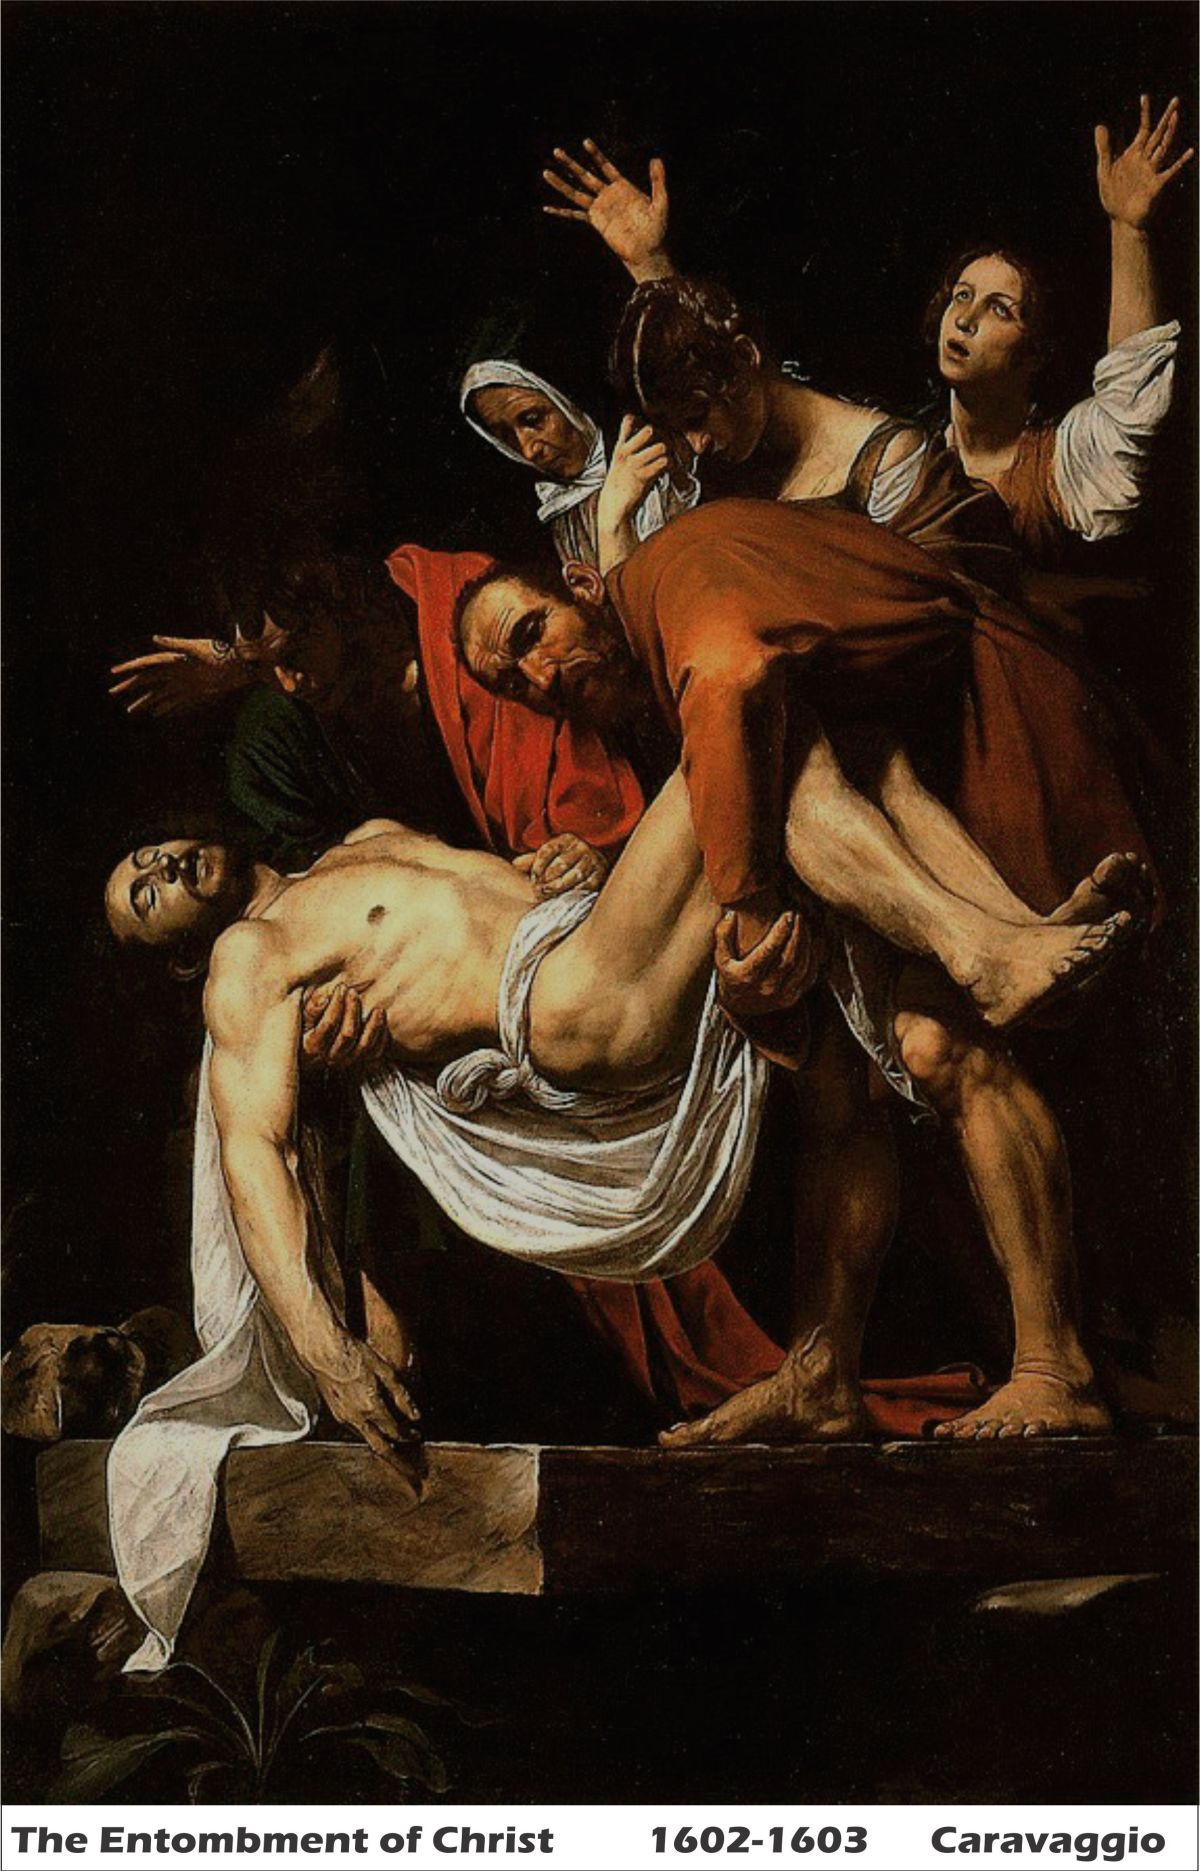 The Entombment of Christ by Caravaggio-History Painting